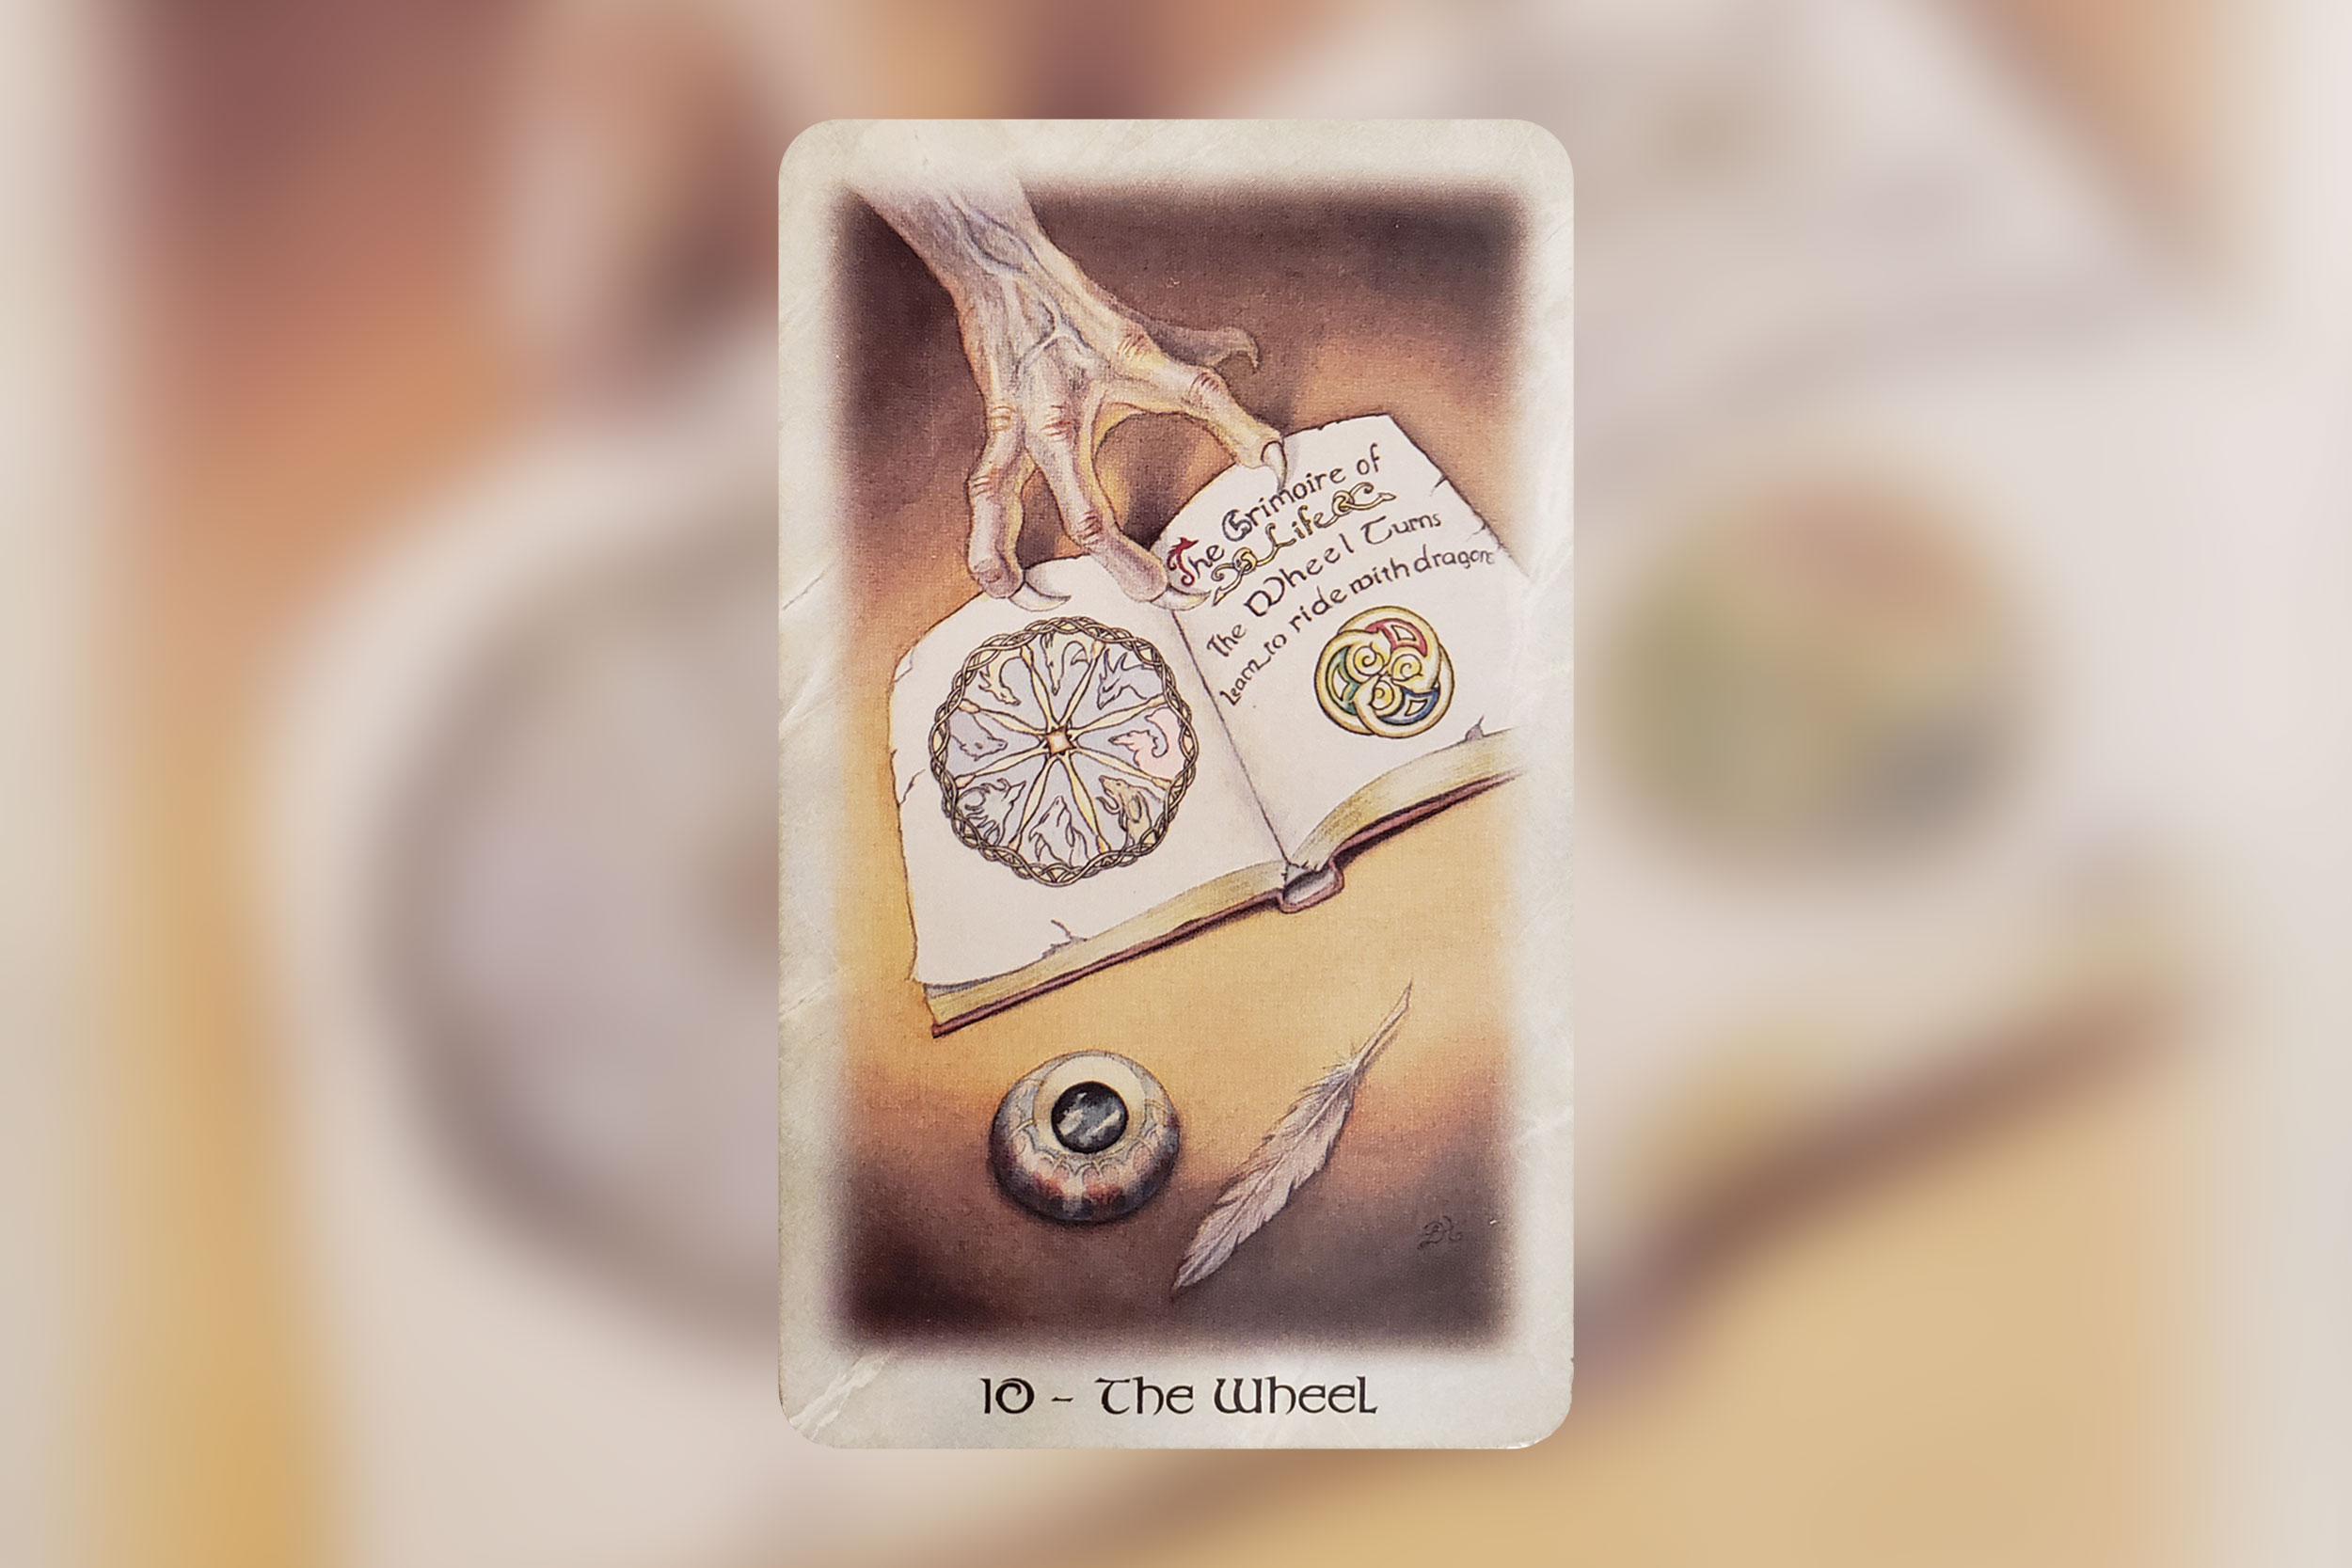 Image from Celtic Dragon Tarot by Lisa Hunt, published by Llewellyn Worldwide. Used with permission.